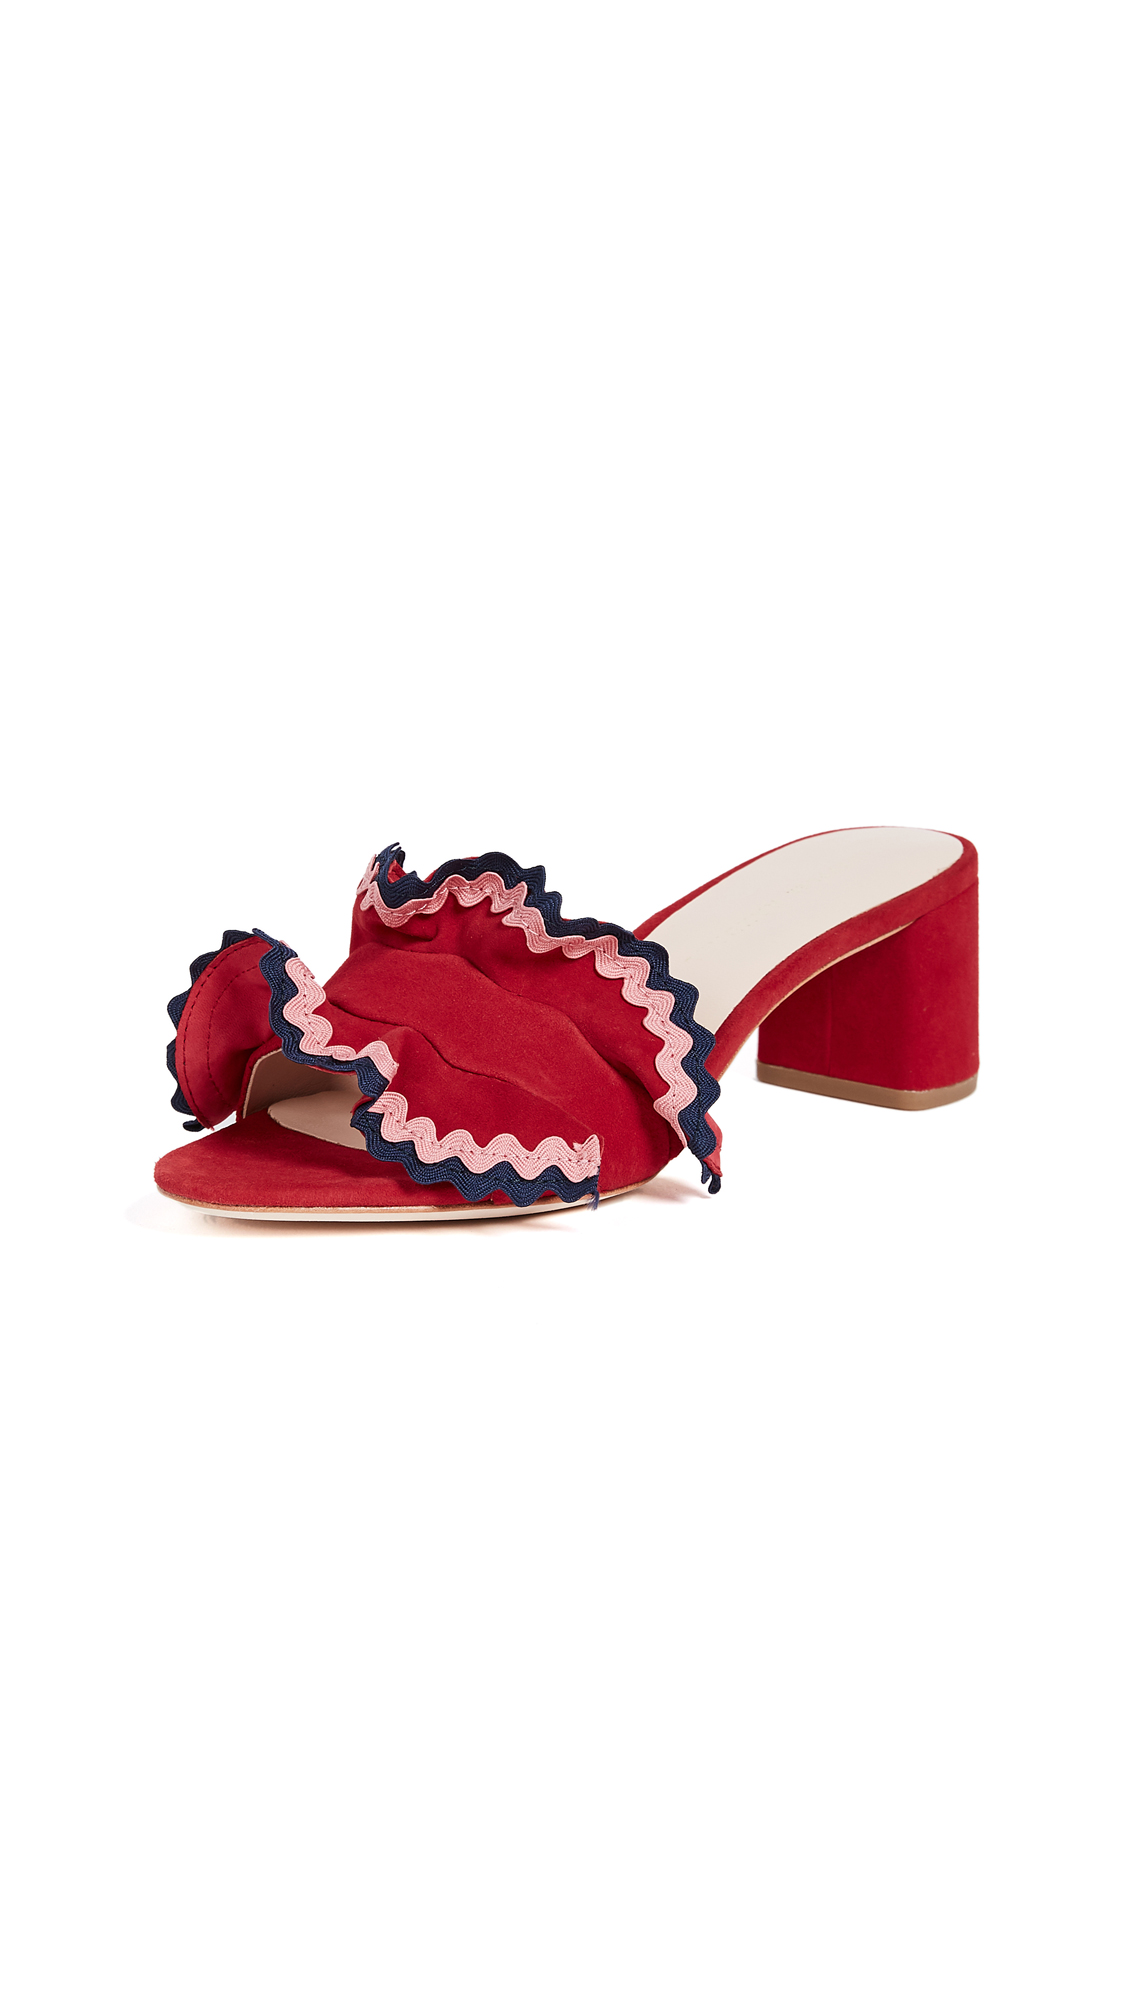 Loeffler Randall Vera City Slide Sandals - Bright Red/Multi